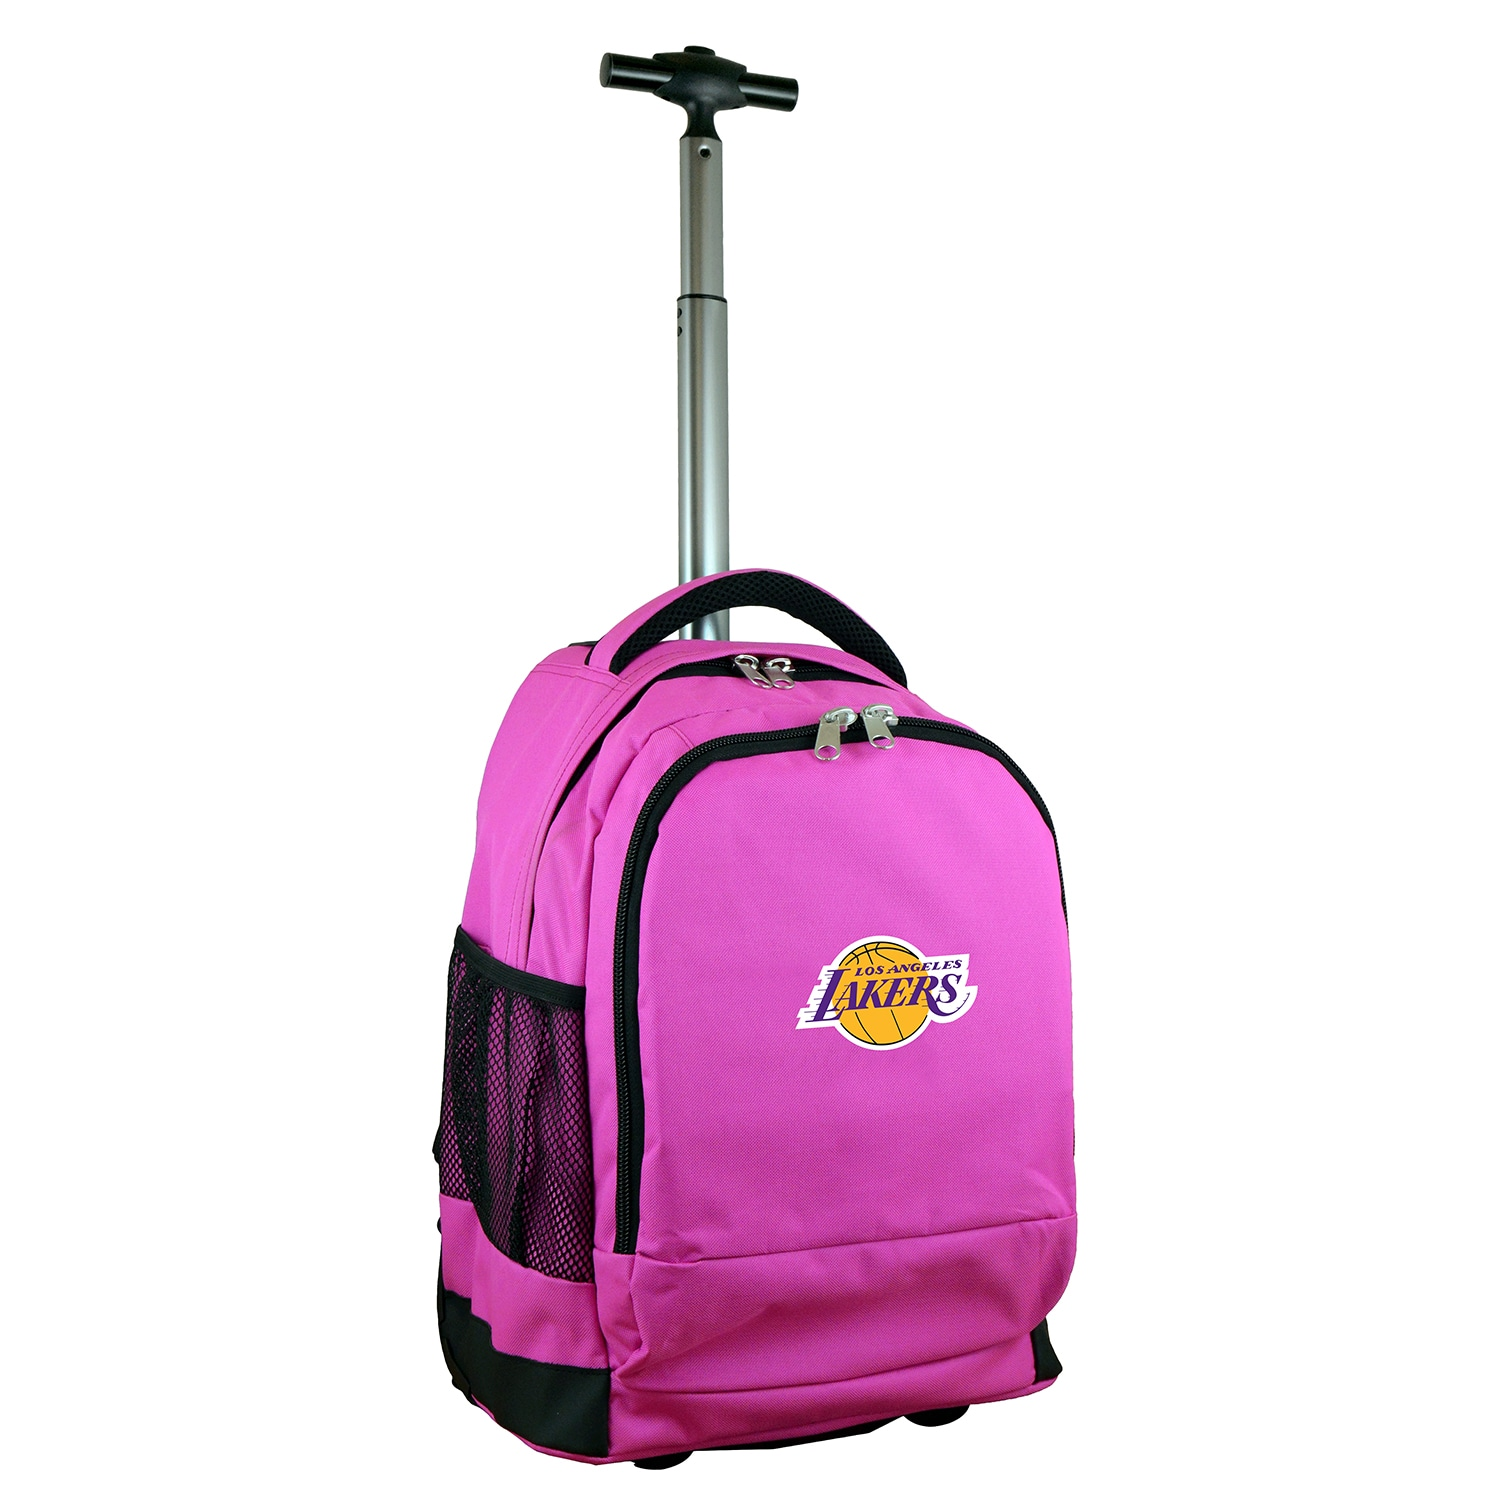 Los Angeles Lakers 19'' Premium Wheeled Backpack - Pink